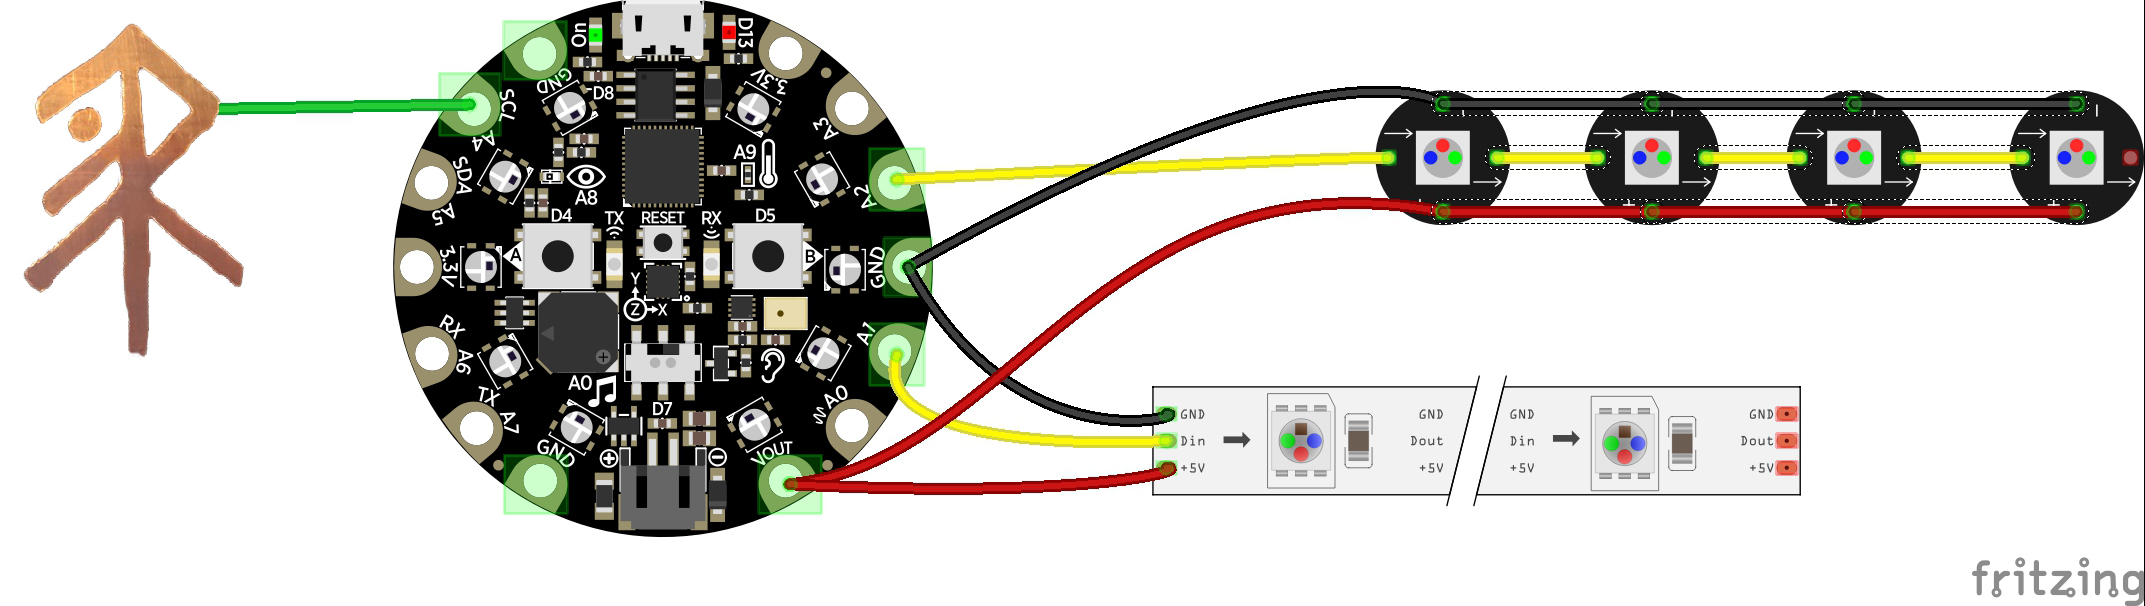 led_strips_dragon_wiring_bb.jpg